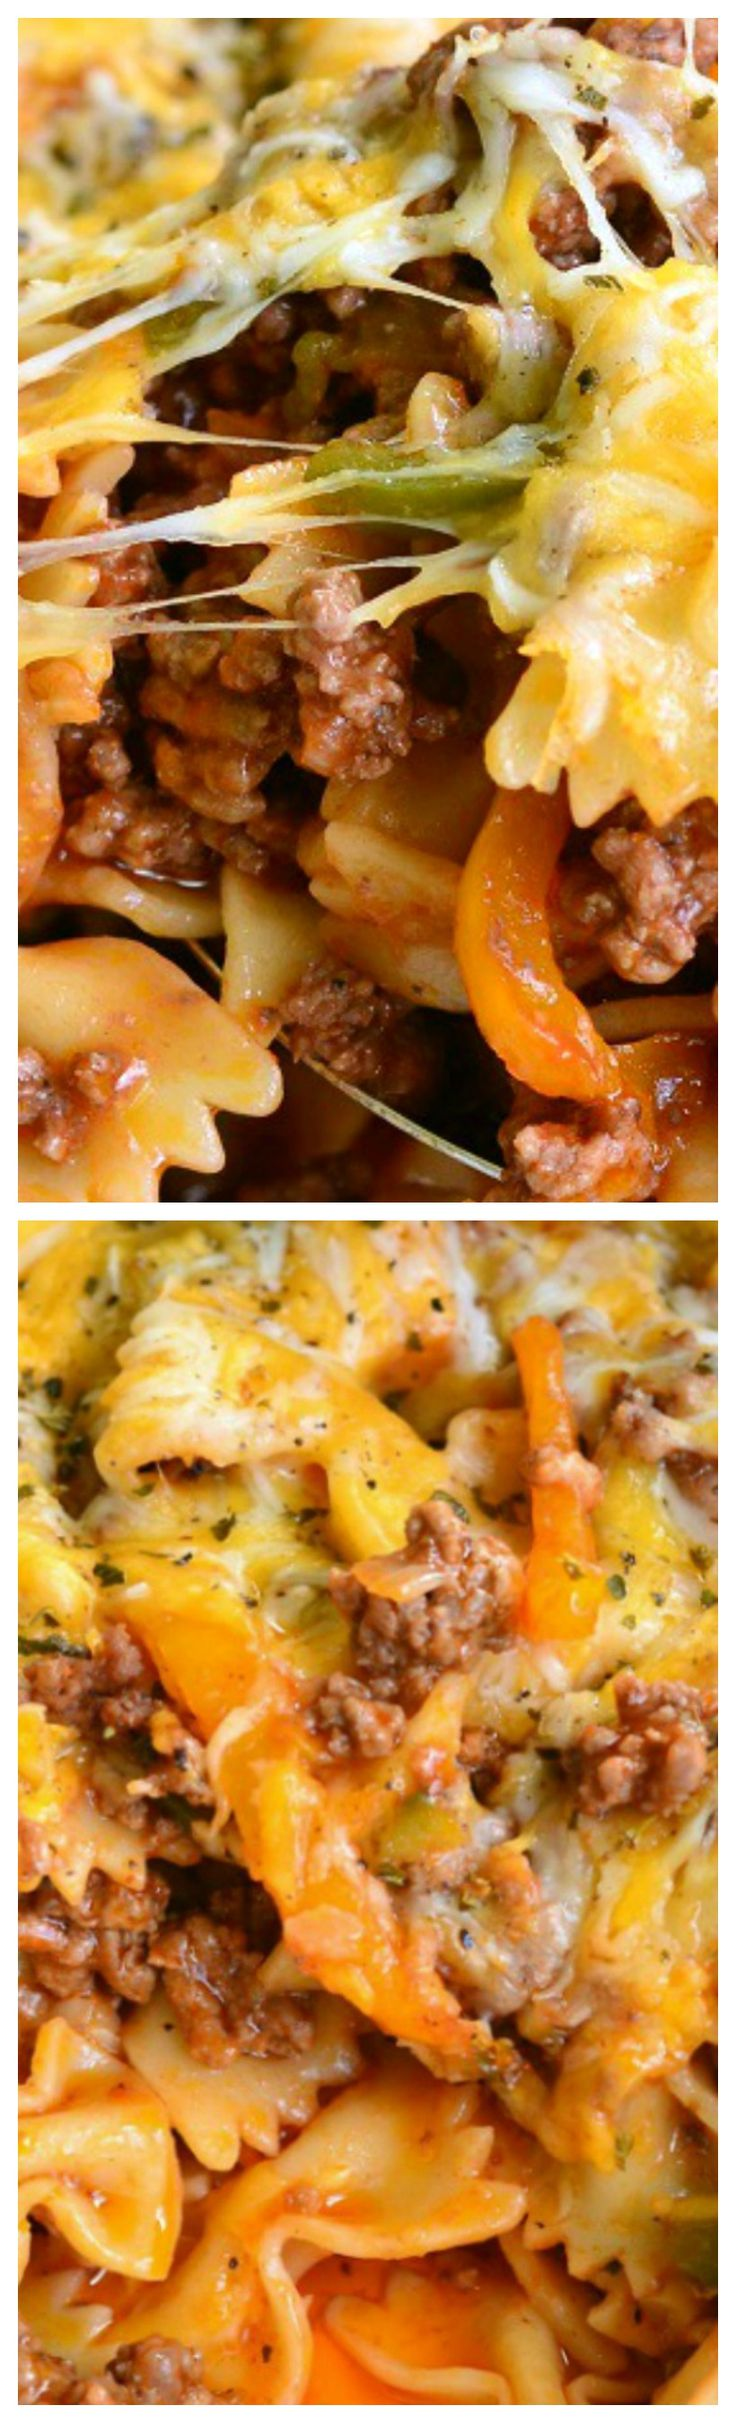 Stuffed Peppers Pasta Casserole ~ Inspired by the classic stuffed bell peppers dish, this comforting pasta casserole holds all those flavors inside. No need to choose, you can have two great dishes in one.